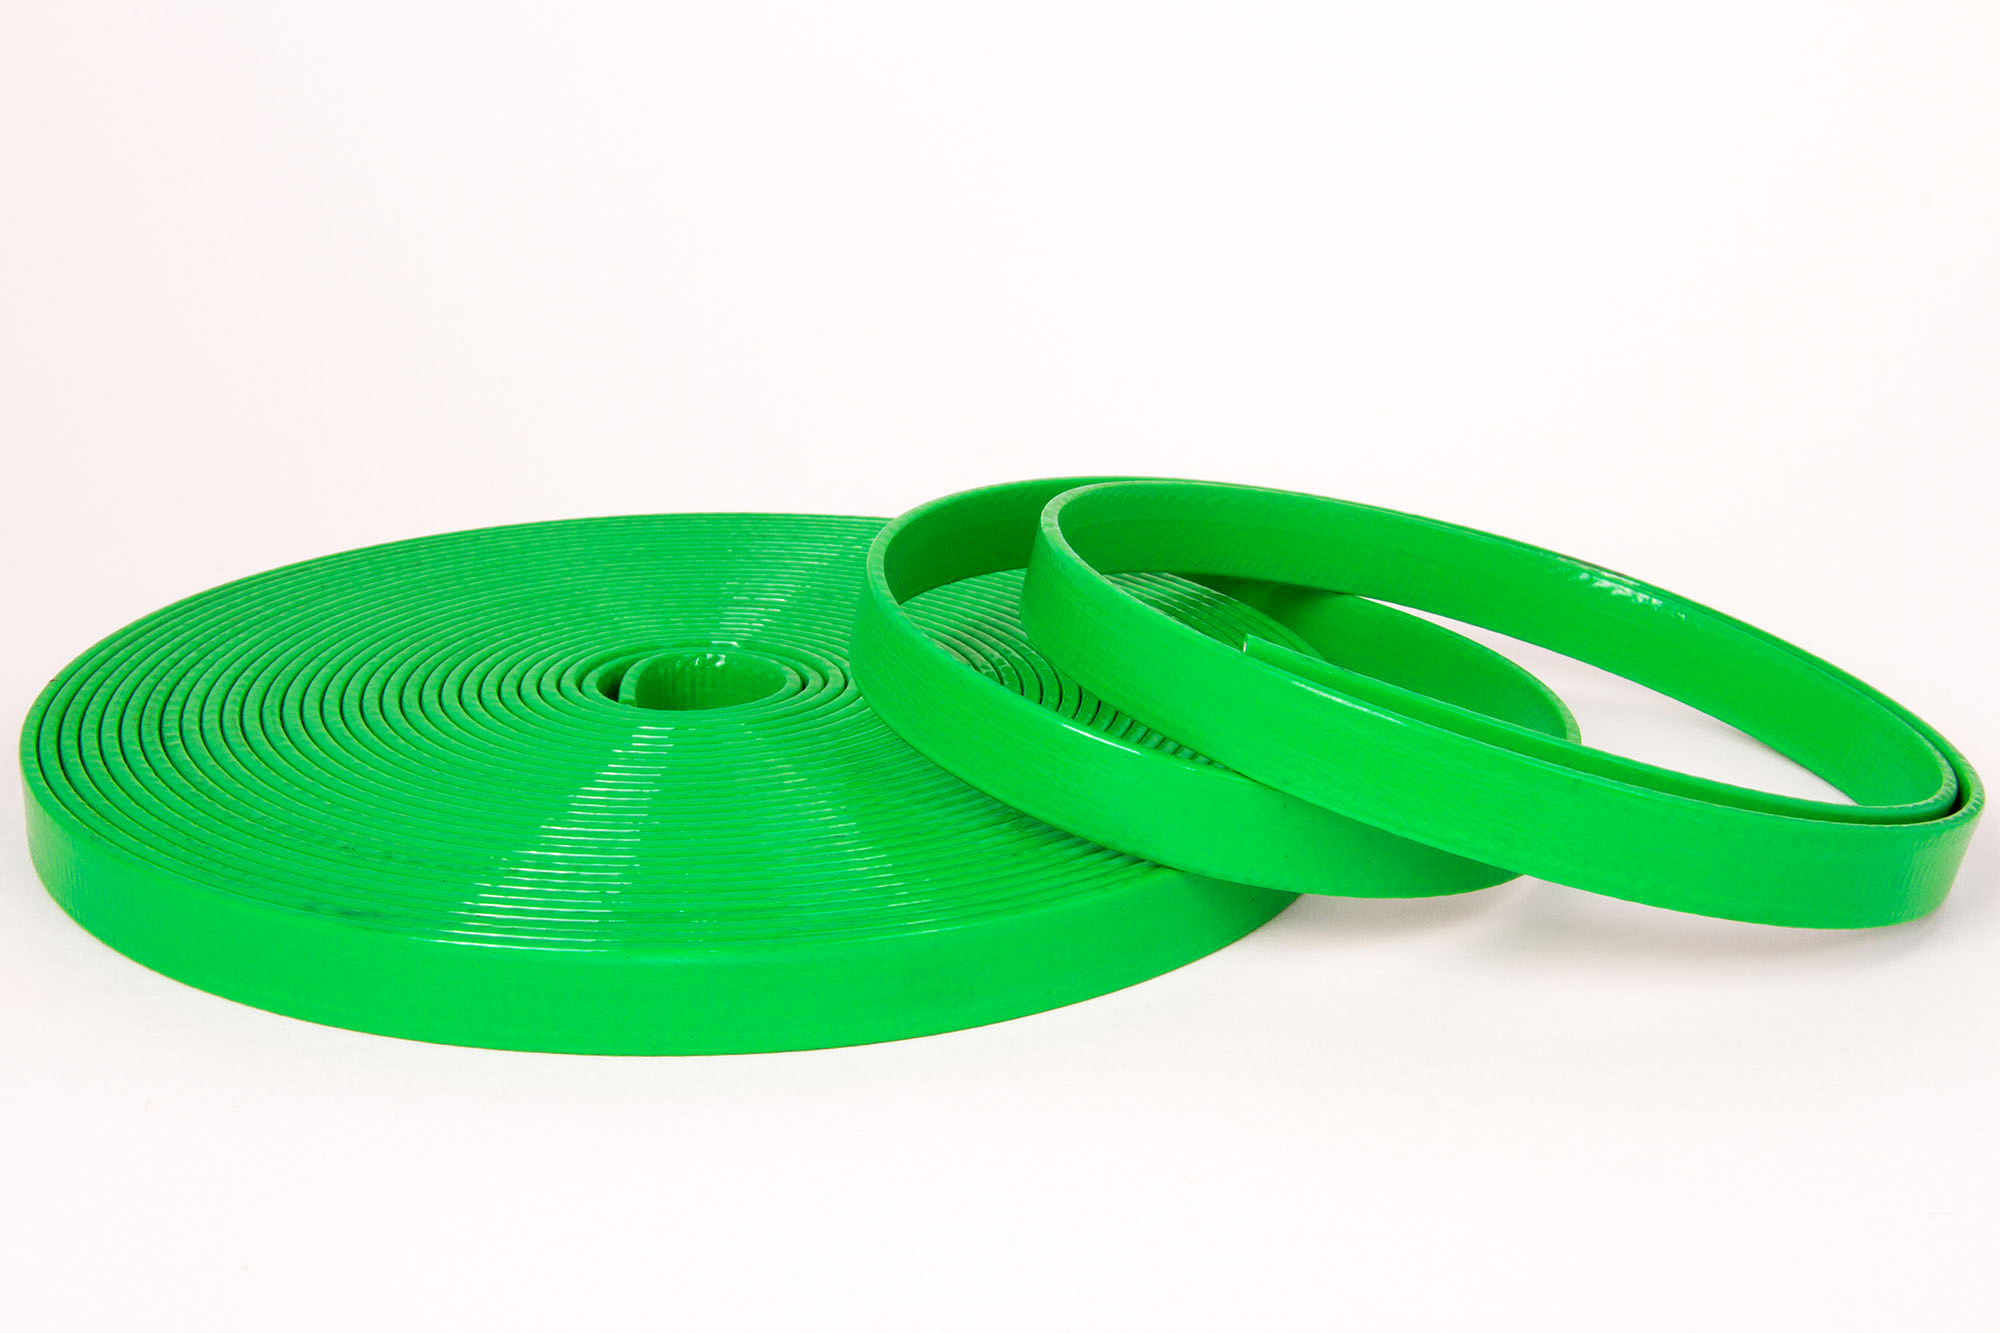 PVC-Coated-Web12mm-Lime Green 02.jpg